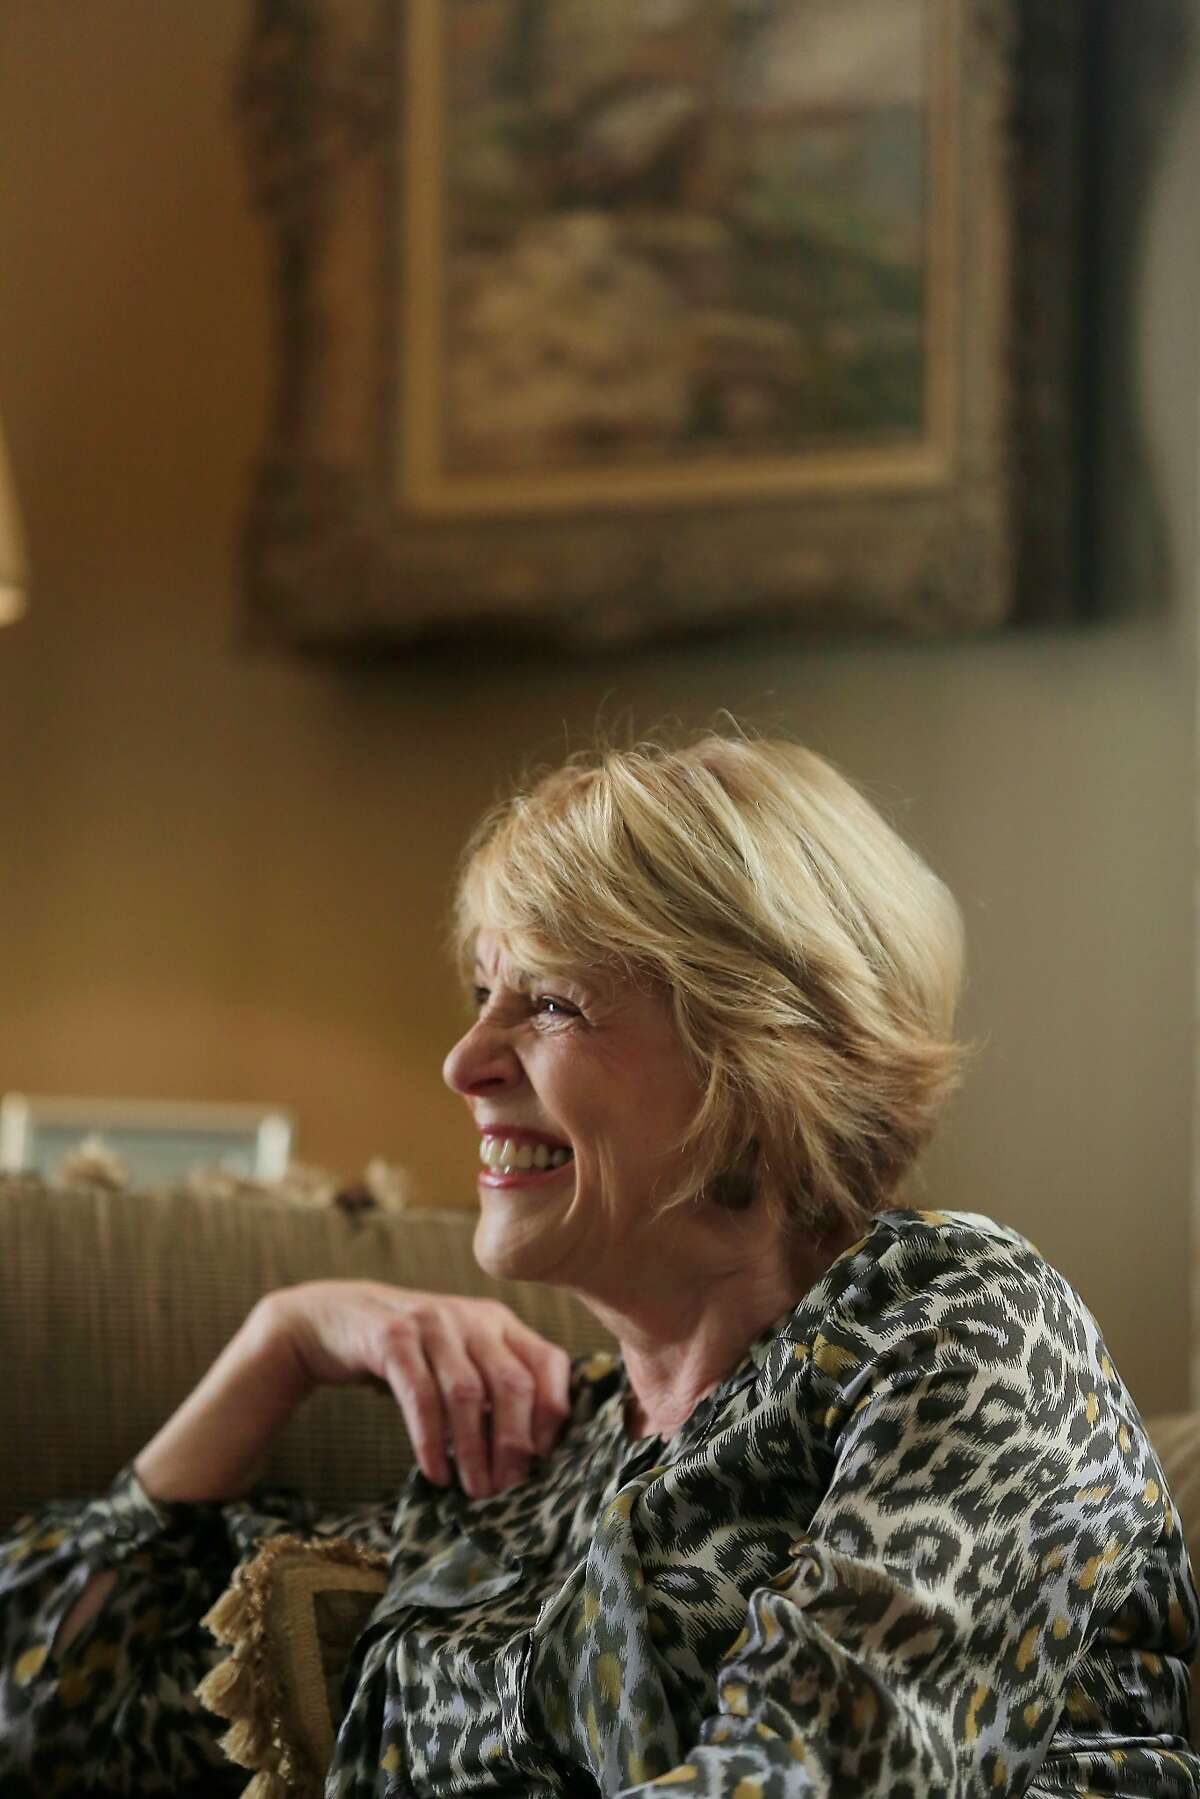 Dagmar Dolby, wife of late Ray Dolby, answers questions during an interview at her home on Tuesday, December 5, 2017 in San Francisco, Calif. Ray and Dagmar Dolby Family Fund gifting $115 million to Ray Dolby's alma mater University of Cambridge's Cavandish Labs.